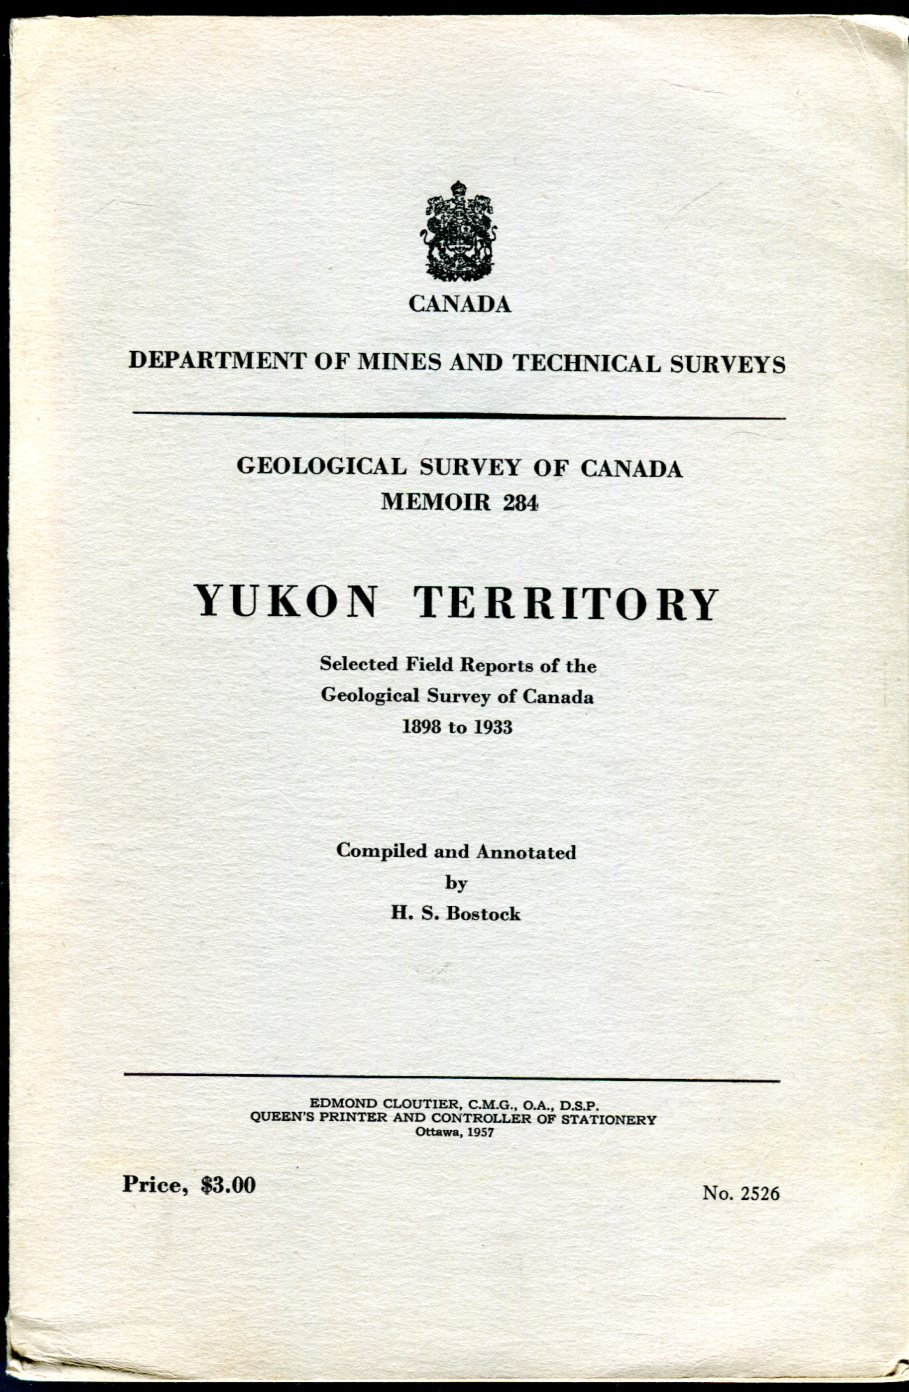 Image for Yukon Territory: Selected Field Reports of the Geological Survey of Canada 1898 to 1933: Geological Survey of Canada Memoir 284 (Canada Department of Mines and Technical Surveys Series)